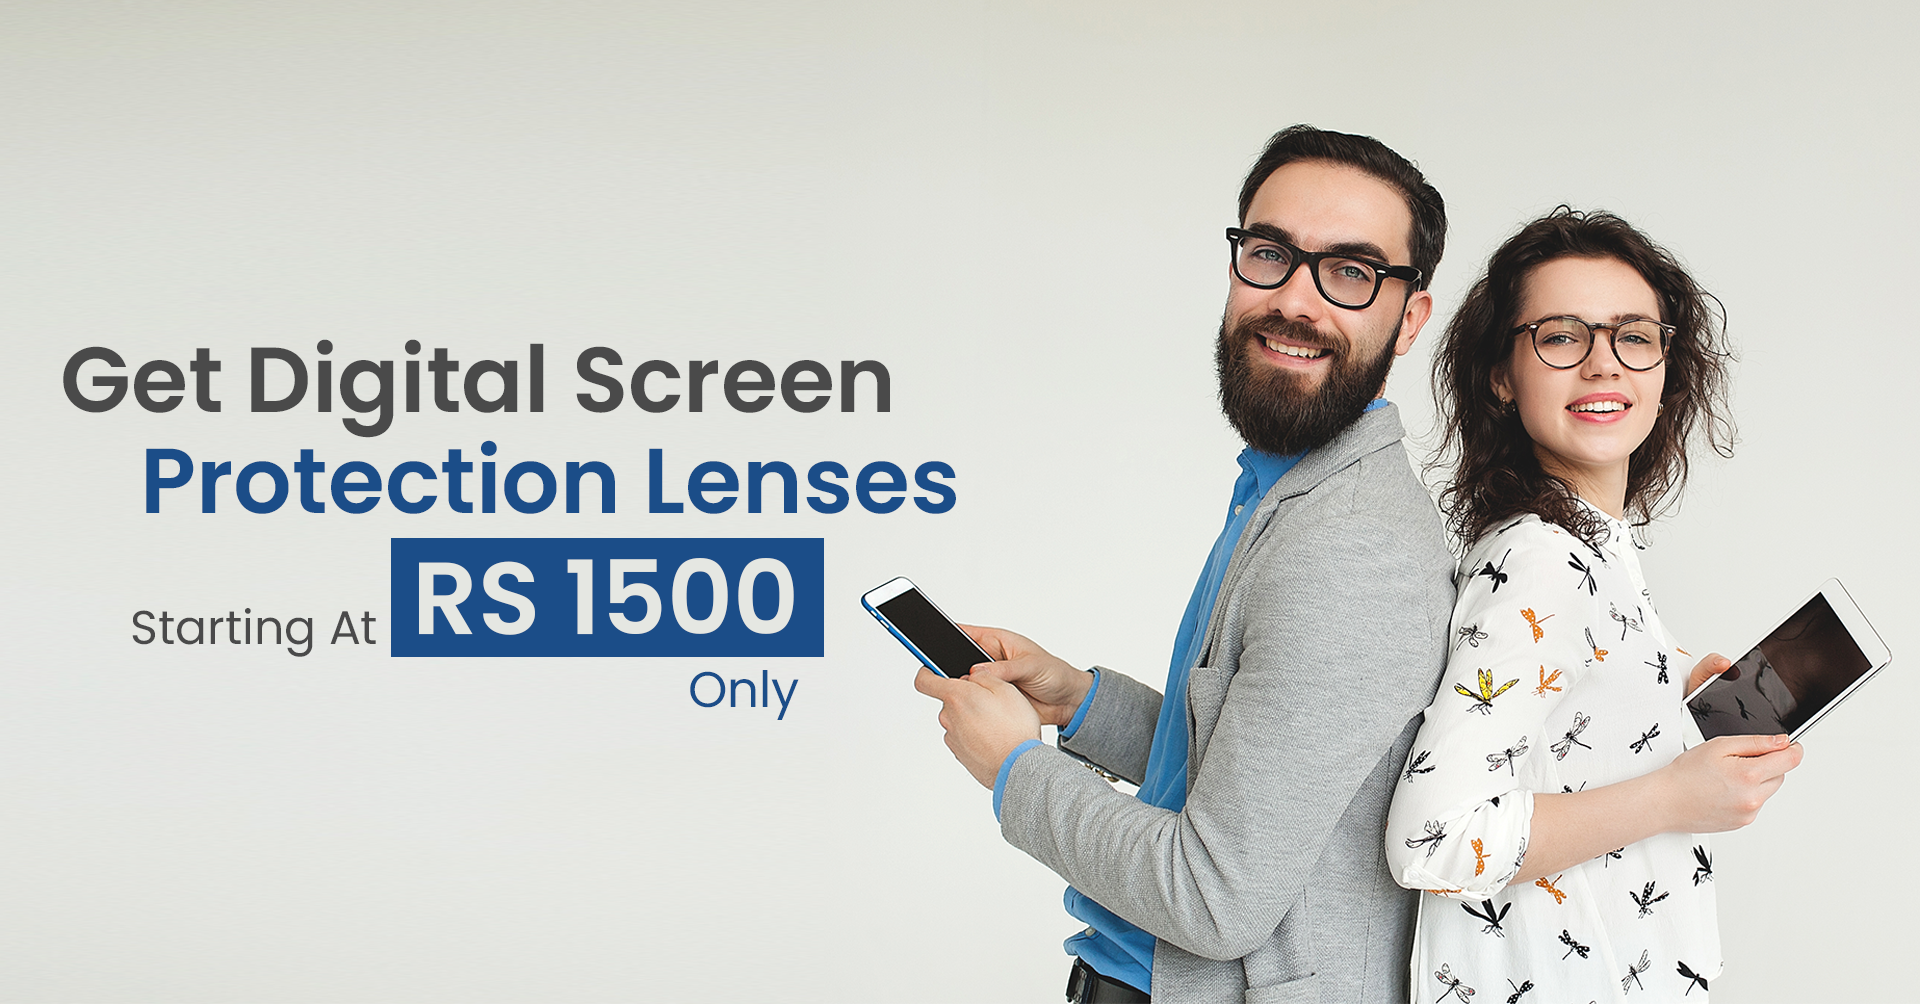 Get Blue Cut Digital Screen Protection Lenses - Eyeglasses.pk